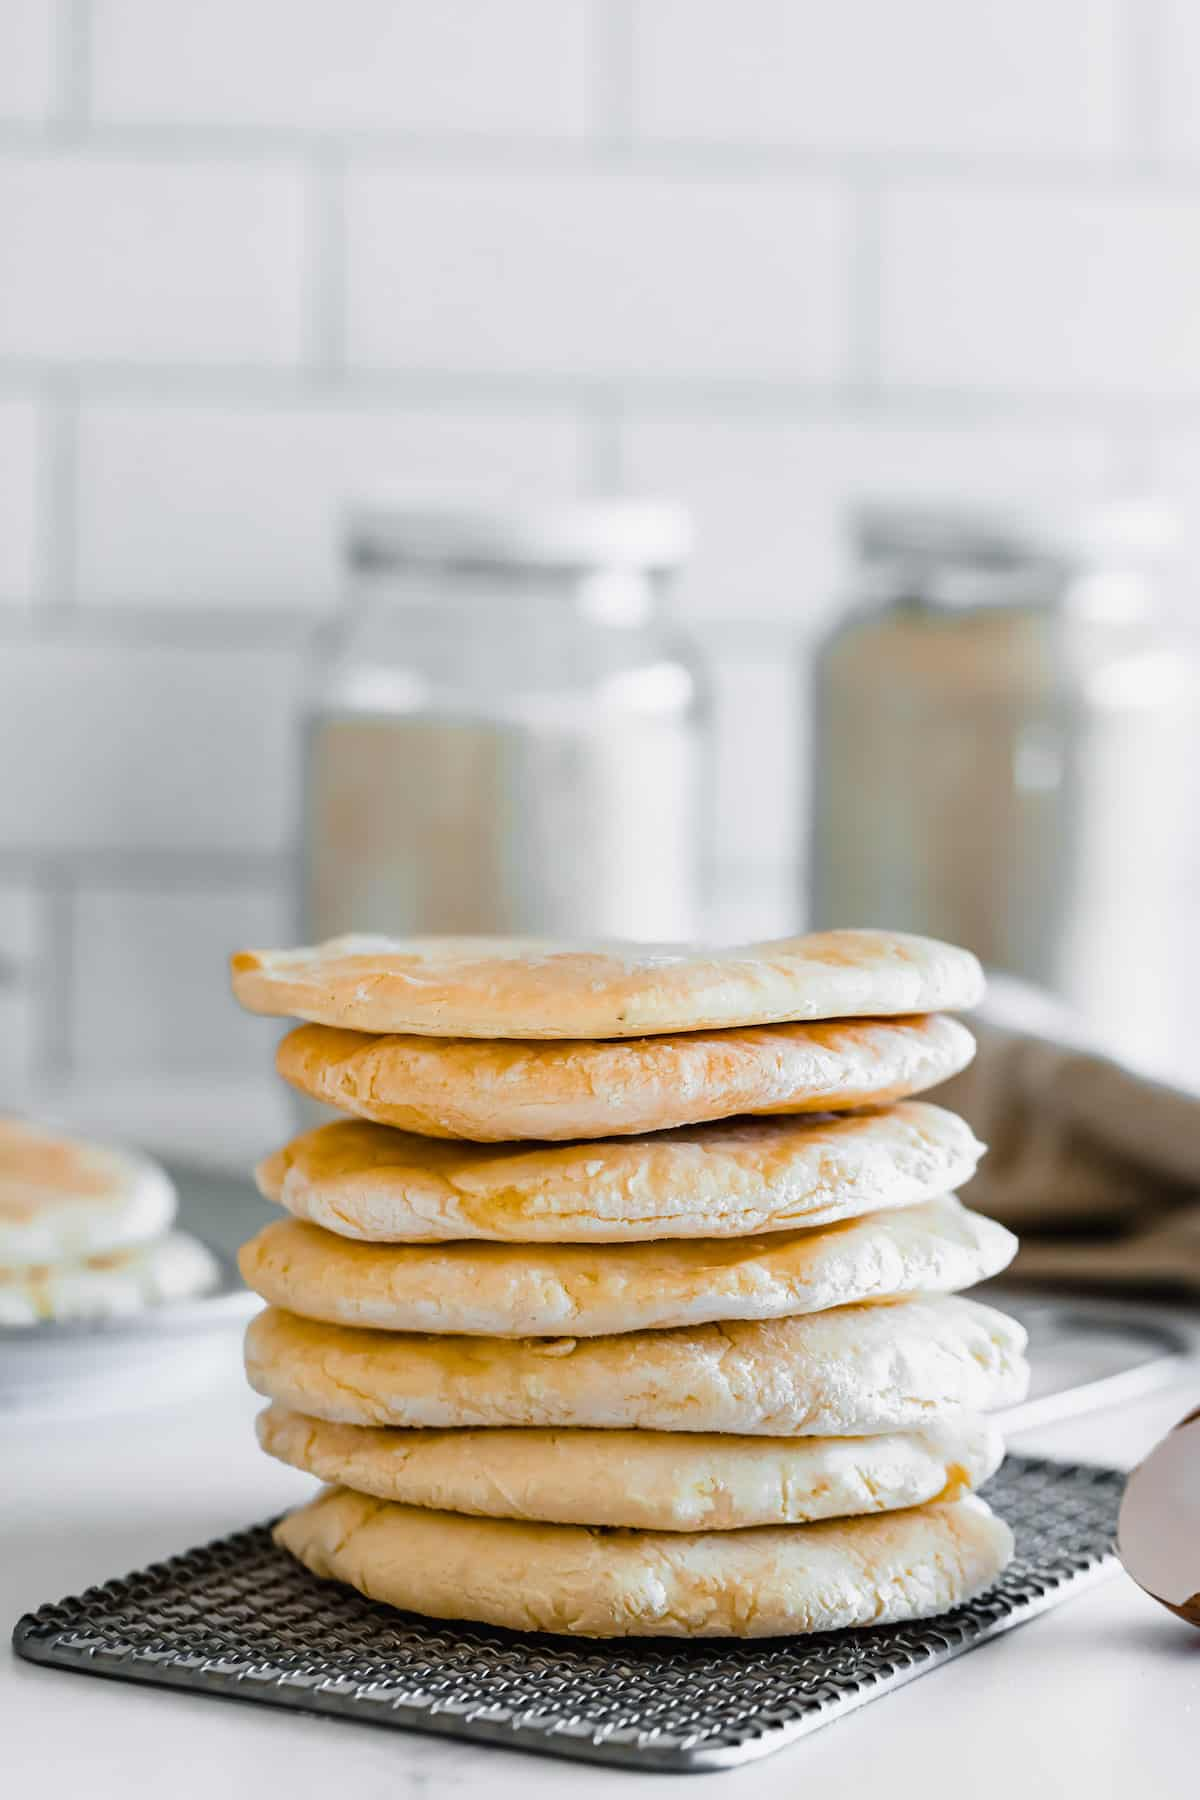 A Close-Up Shot of a Pile of Pieces of Gluten Free Pita Bread